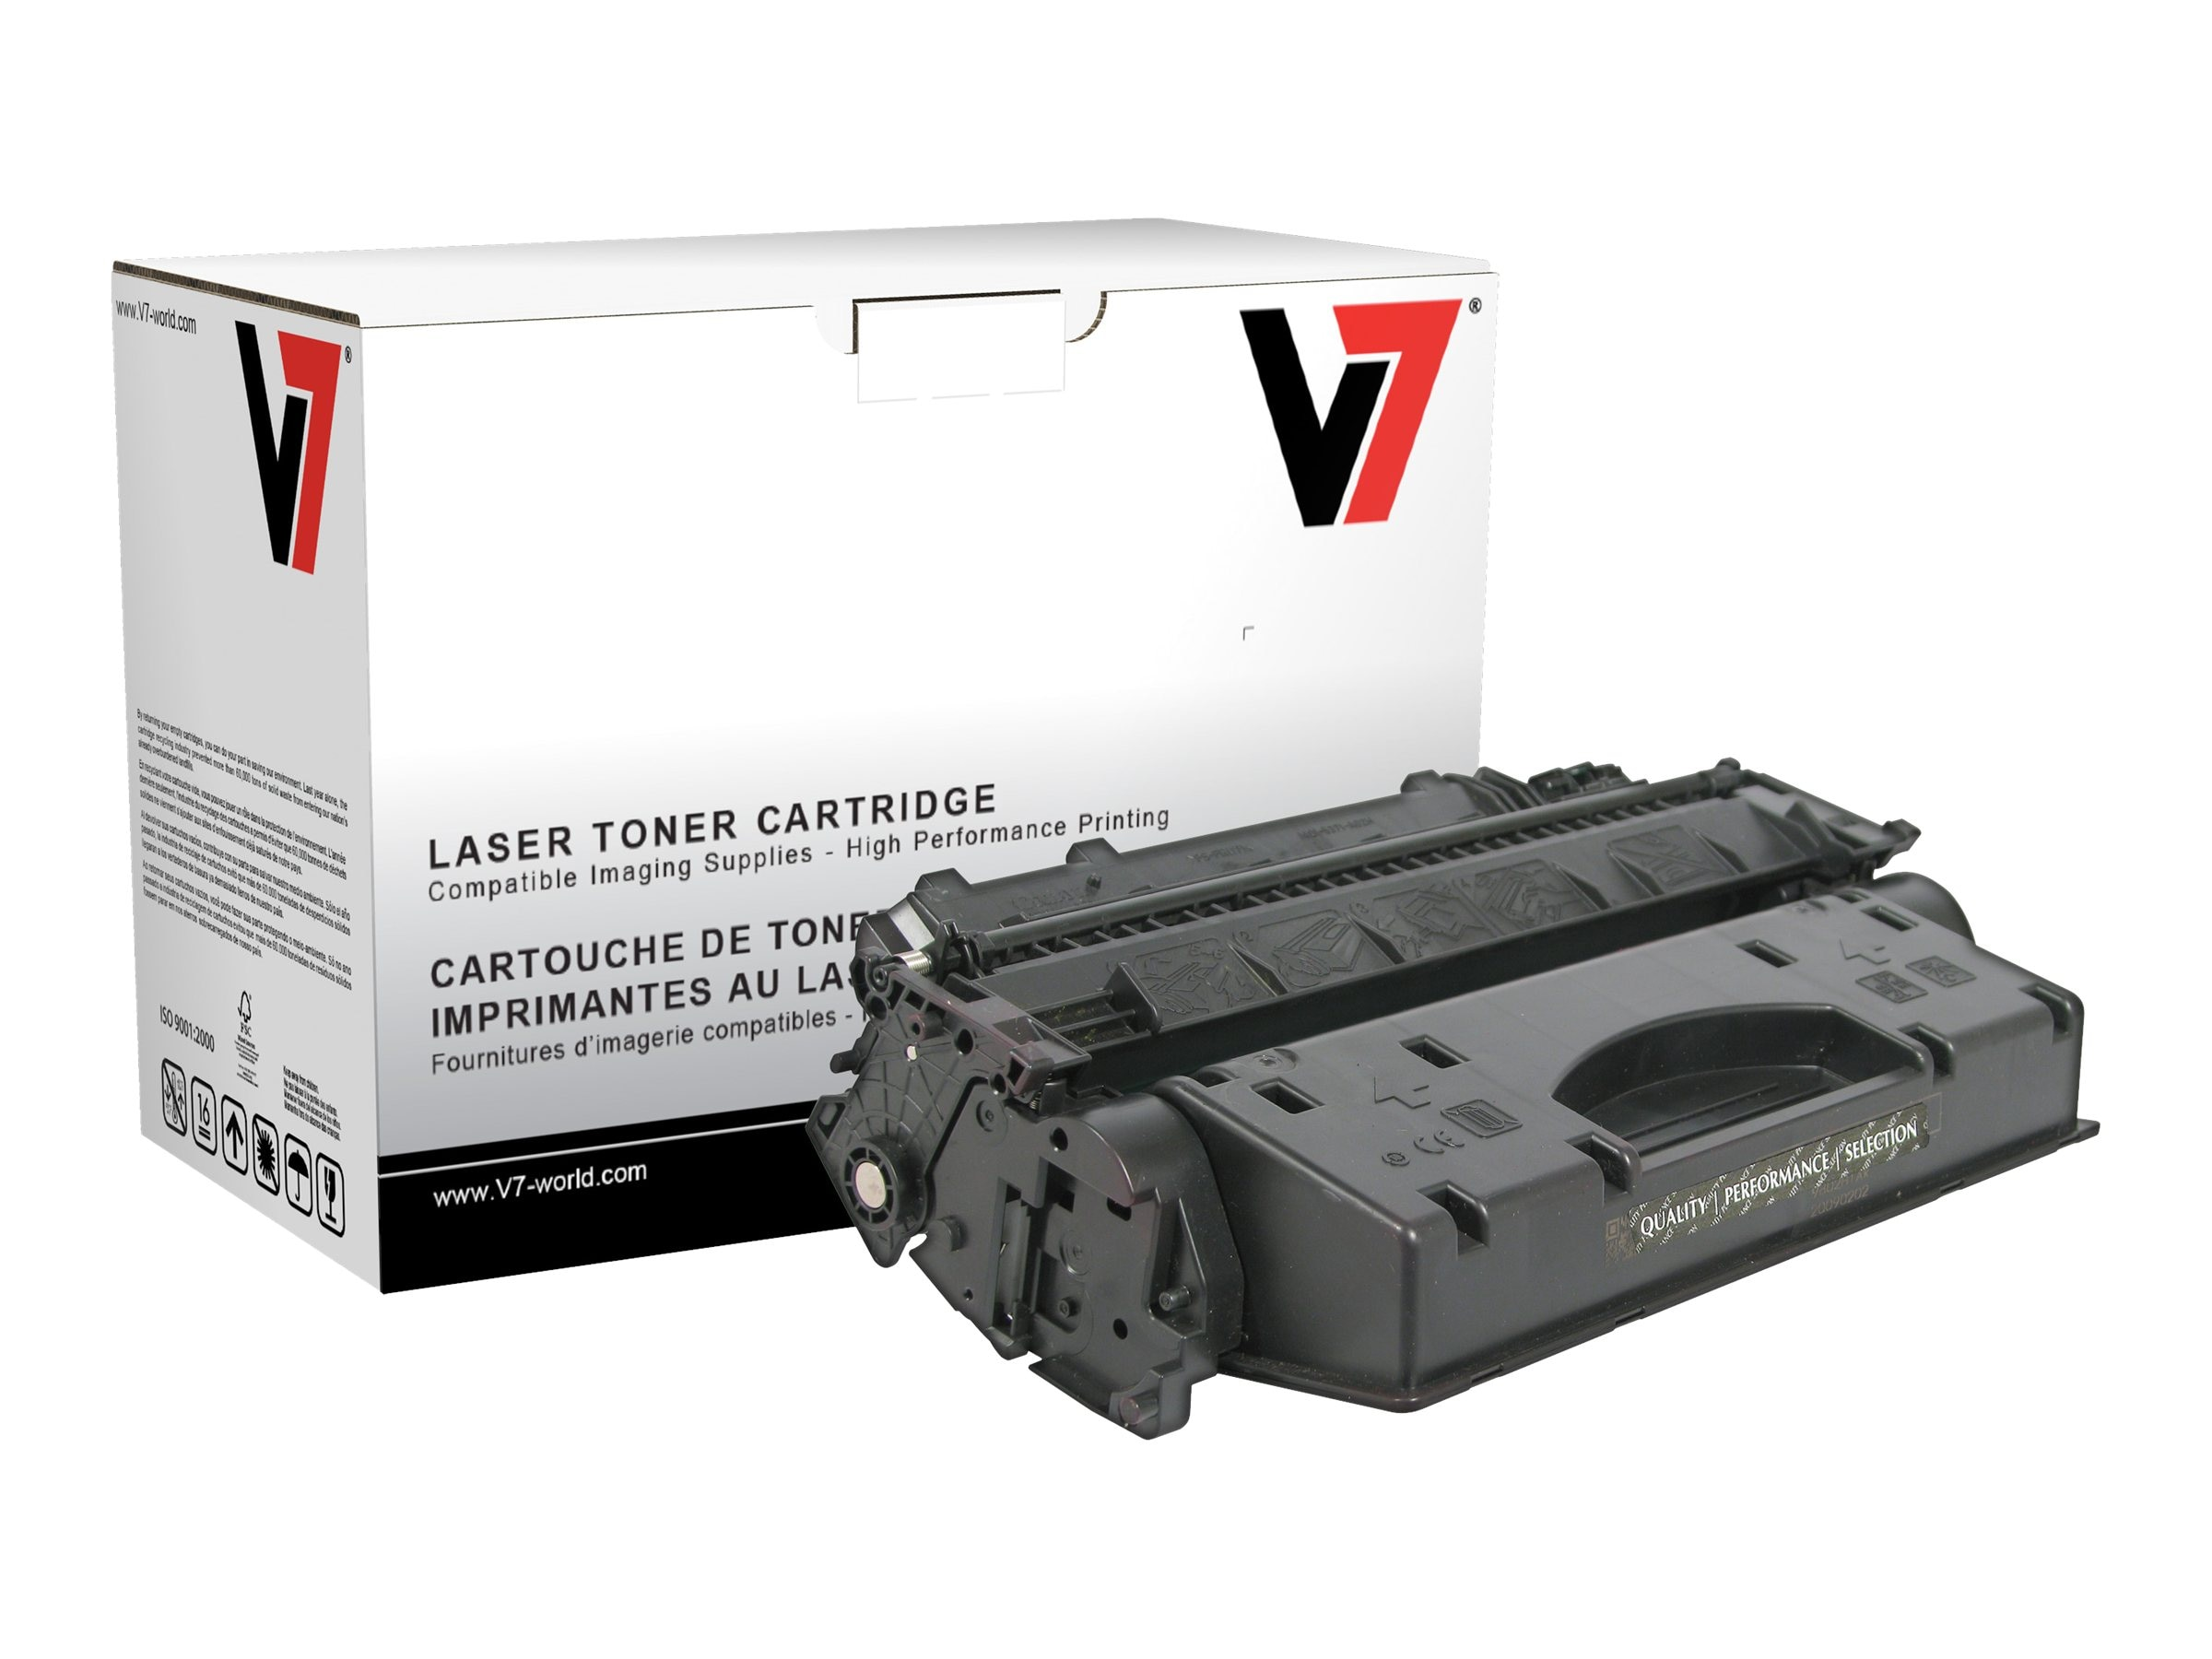 V7 2617B001AA Black Toner Cartridge for Canon imageClass D1120 (TAA Compliant), TCK22617, 13731671, Toner and Imaging Components